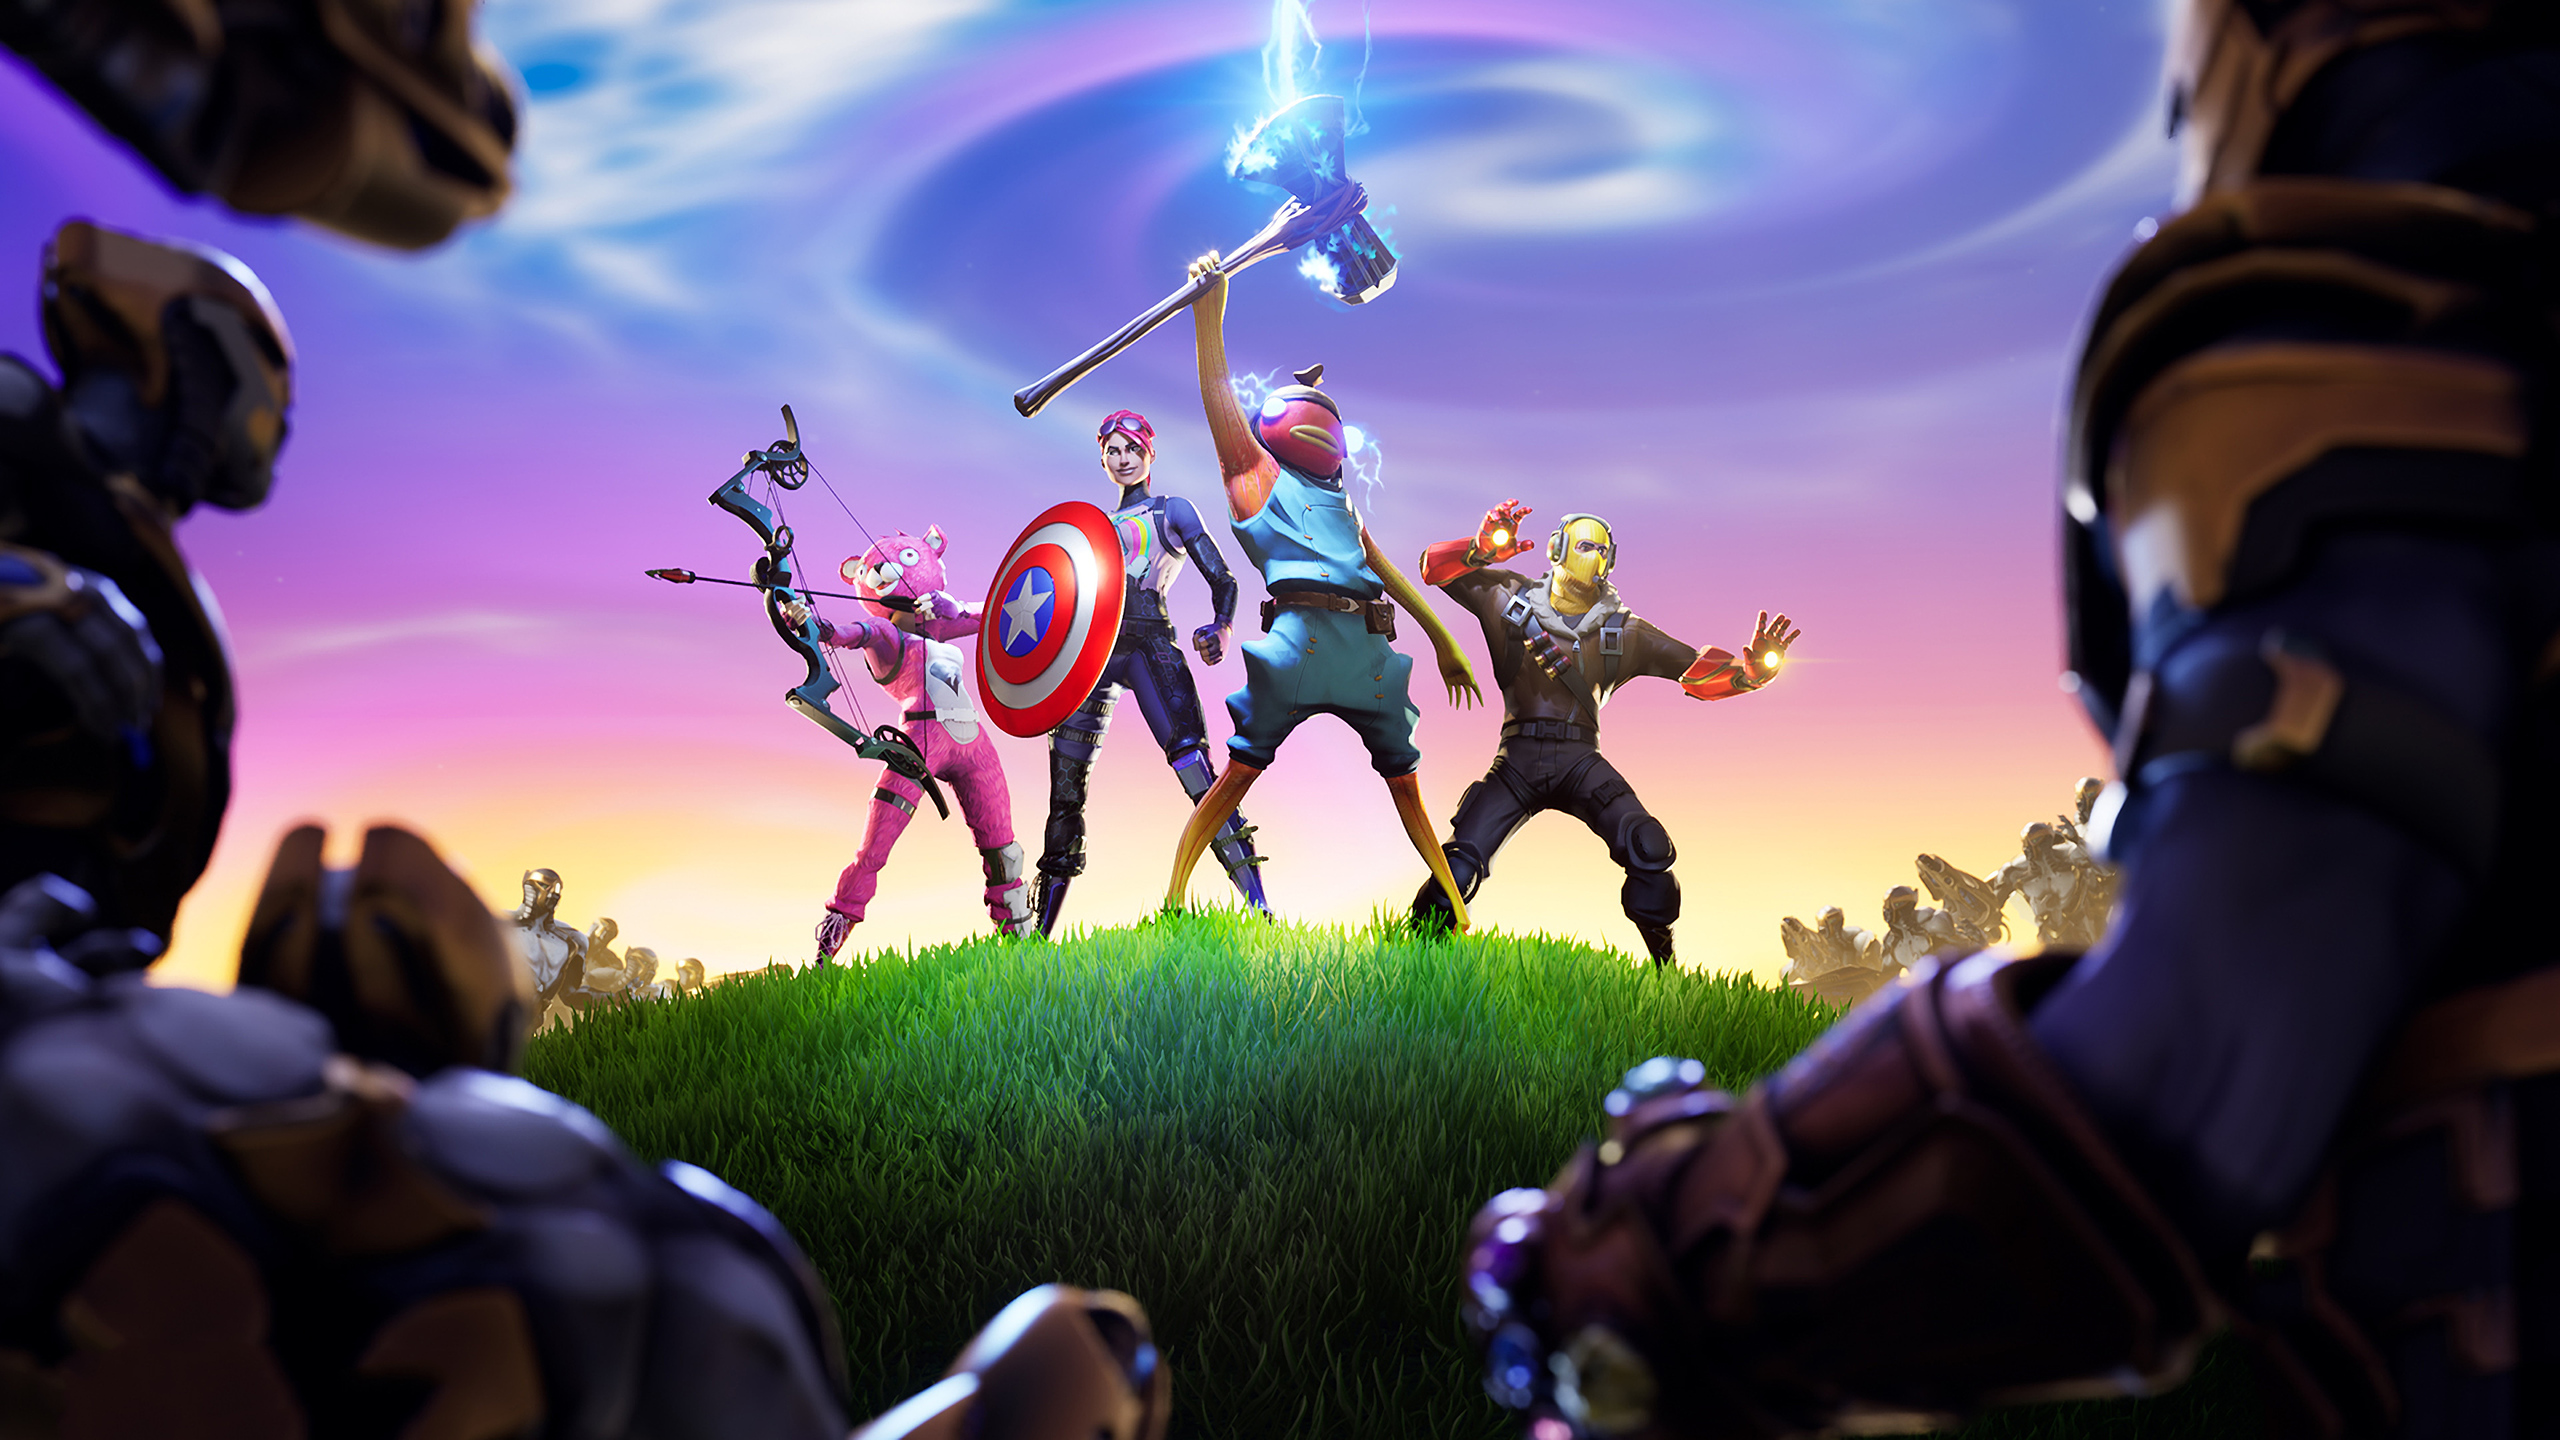 2560x1440 Fortnite X Avengers 1440p Resolution Hd 4k Wallpapers Images Backgrounds Photos And Pictures